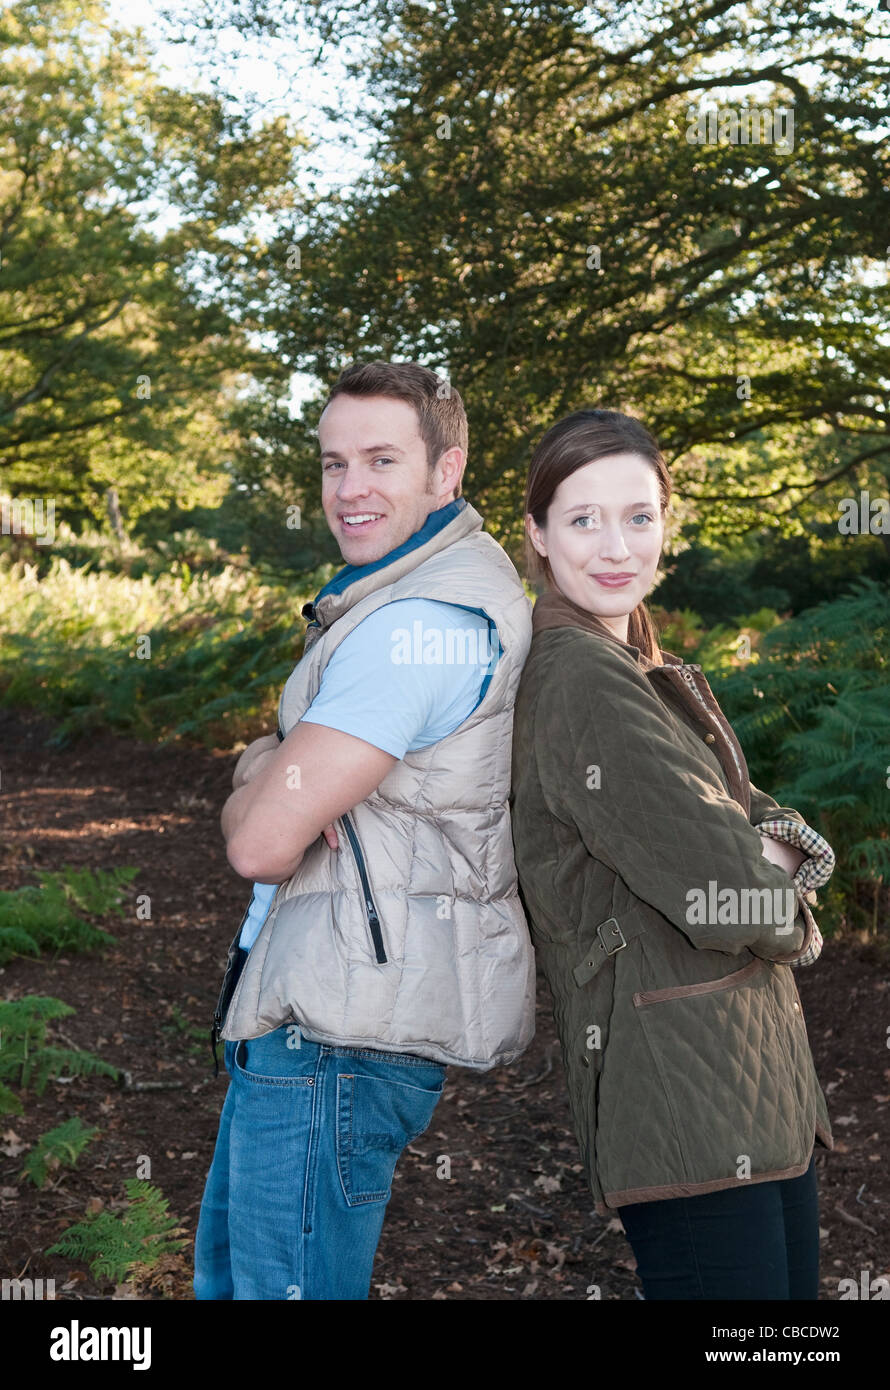 Couple standing back-to-back in park - Stock Image